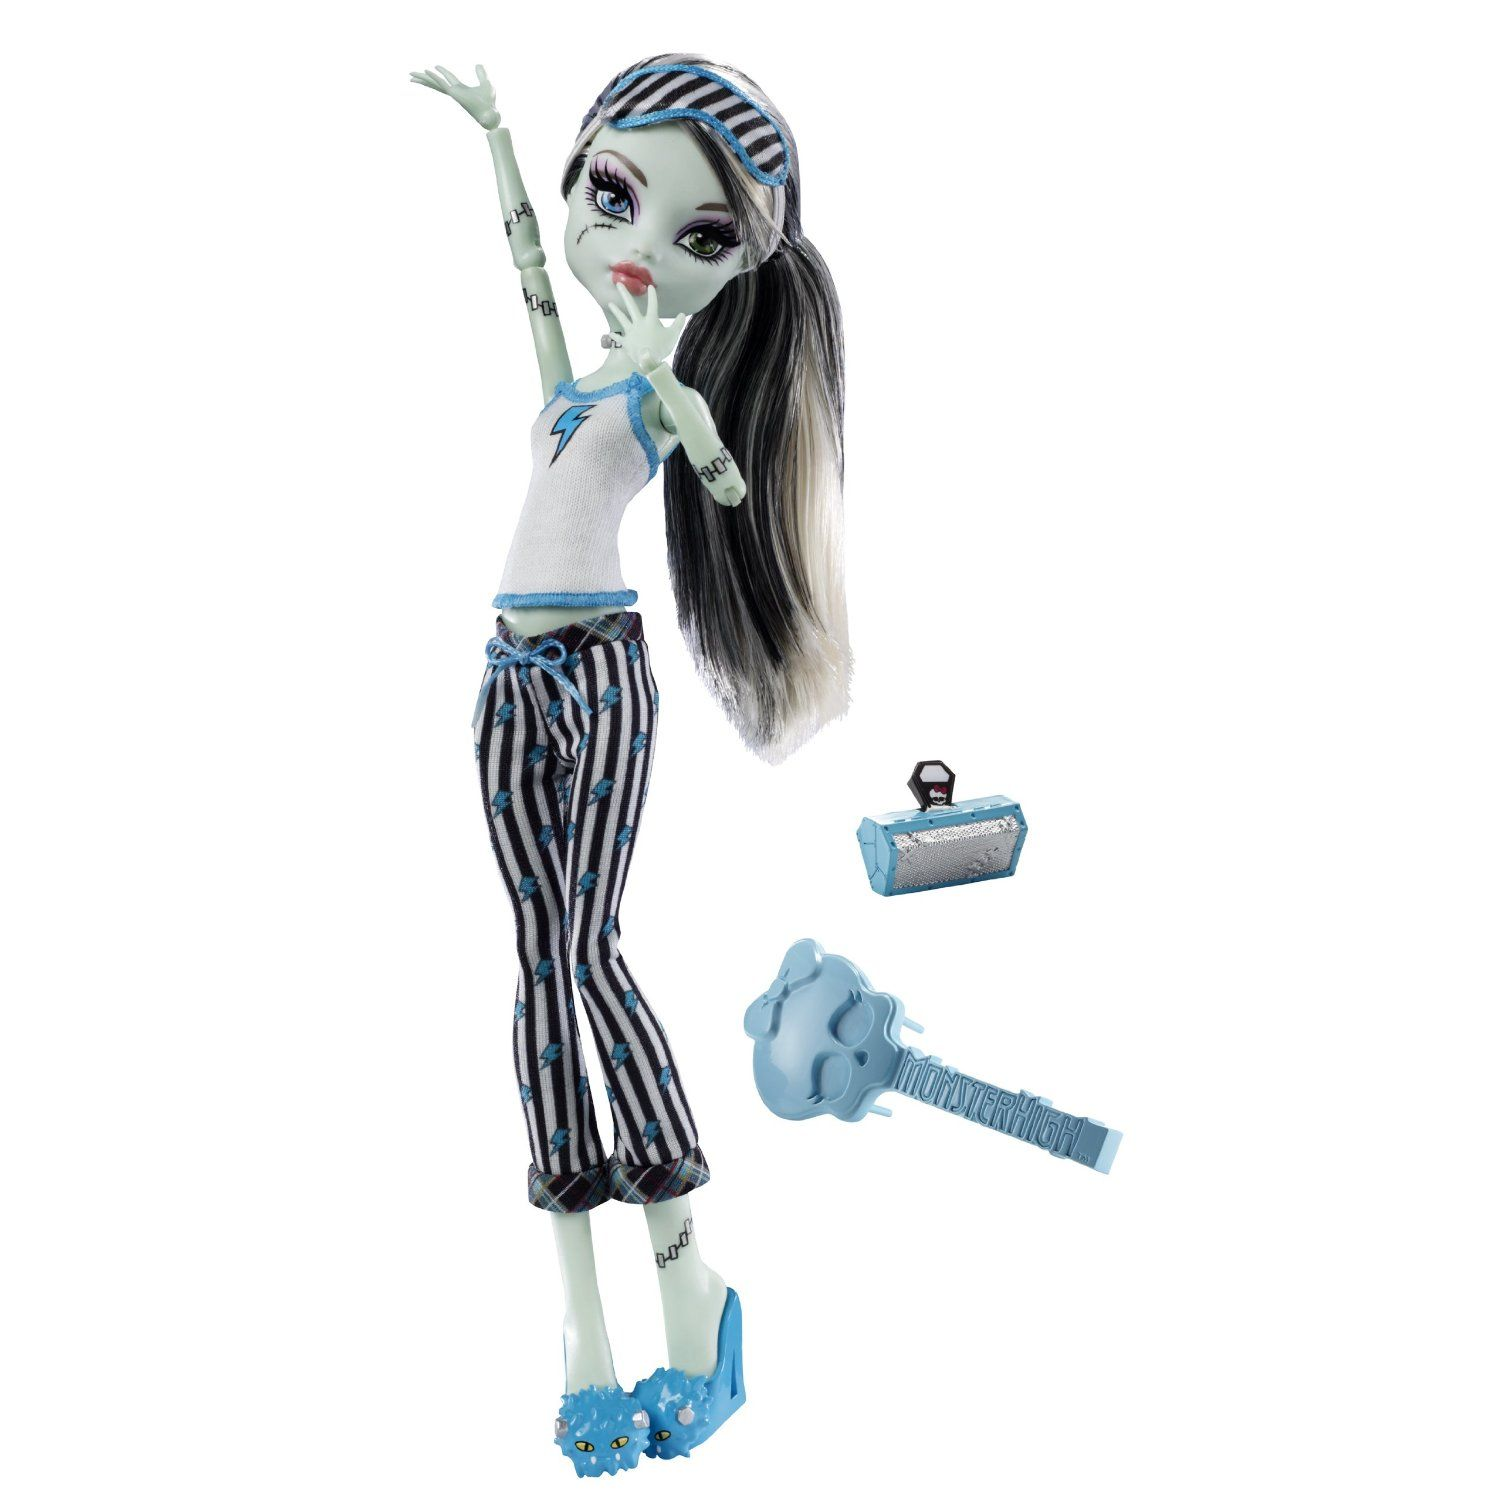 Amazon.com: Monster High Dead Tired Frankie Stein Doll: Toys & Games ...